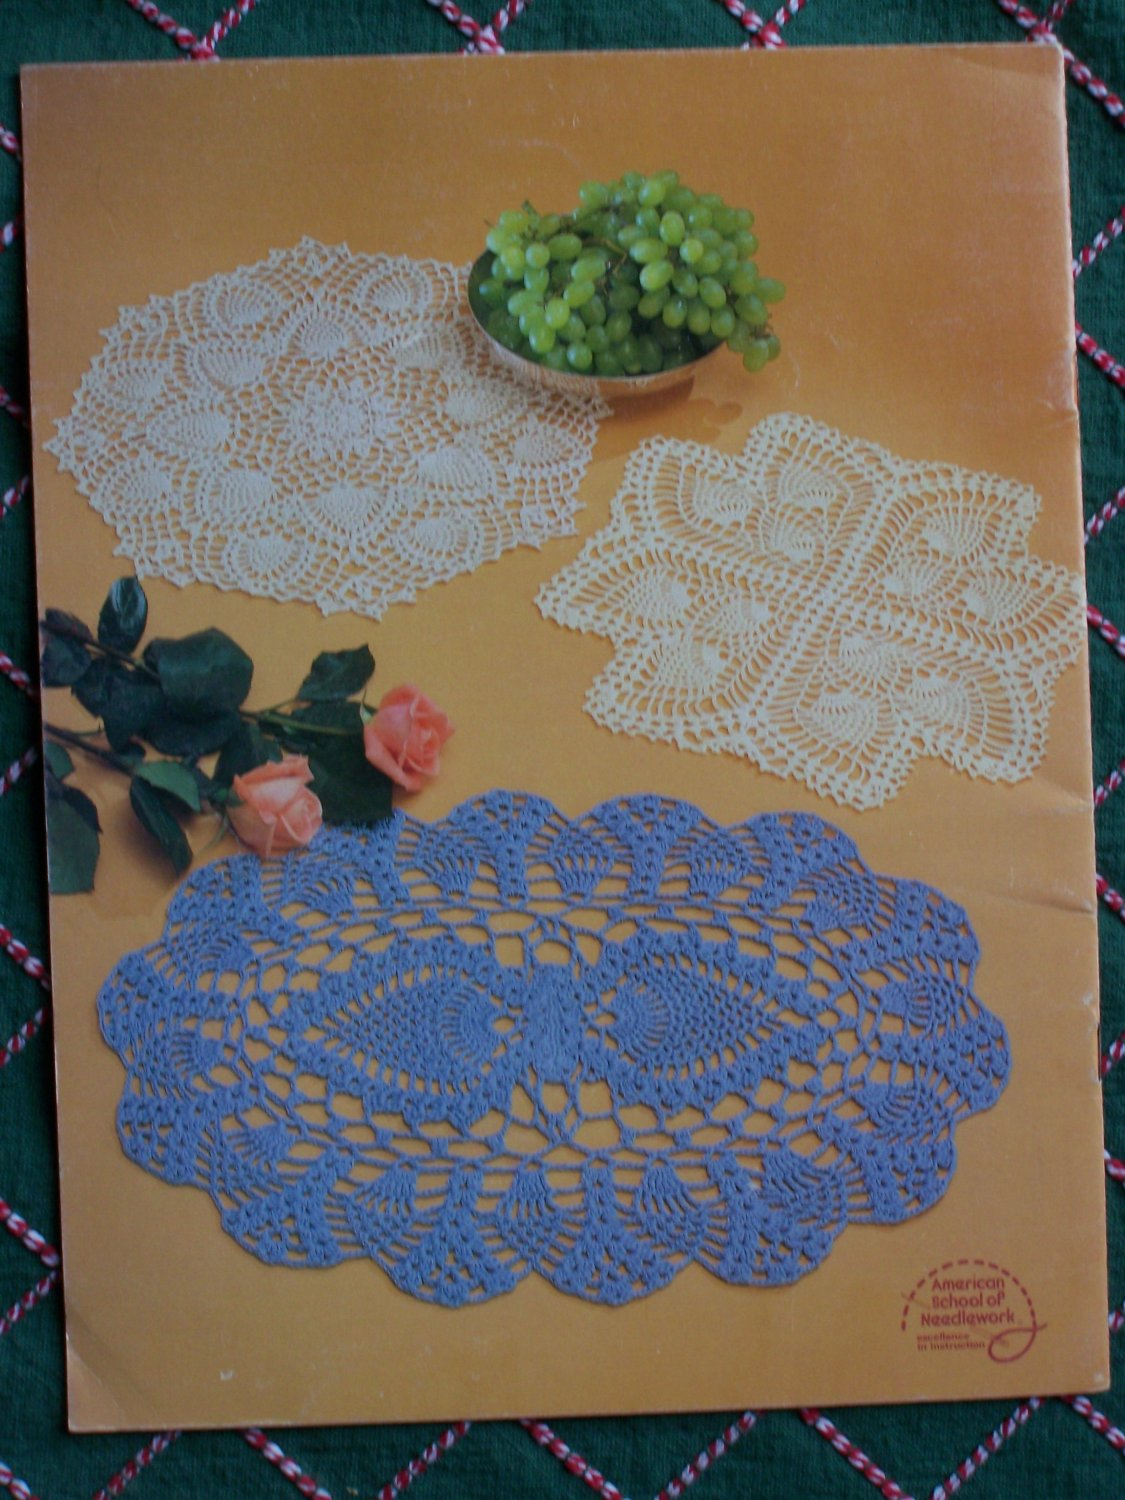 Vintage Boye 12 Pineapple Crochet Patterns Book By Rita Weiss